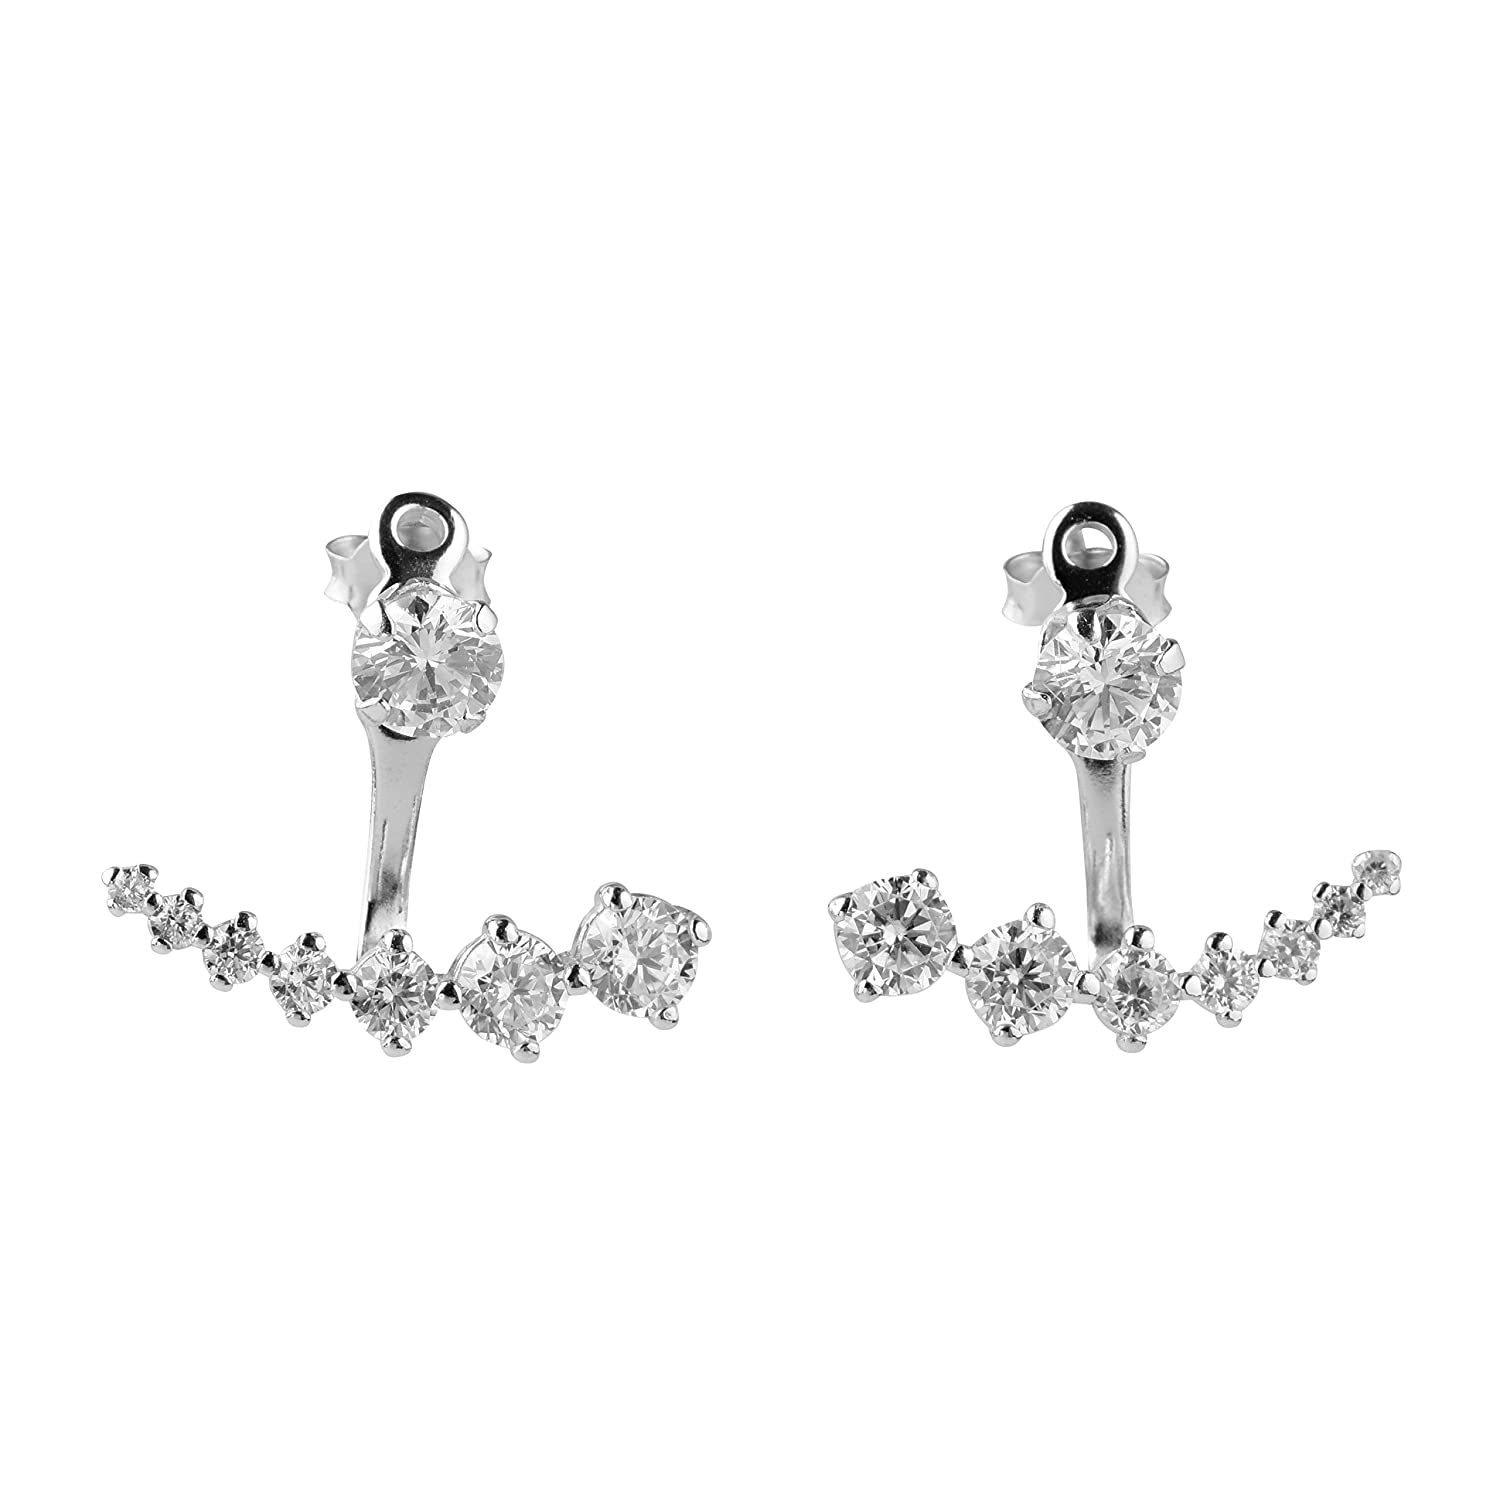 blackbox Jewelry Sterling Silver Square White Cubic Zirconia Ear Jacket Earrings Two Side Earrings Quality Choices 56